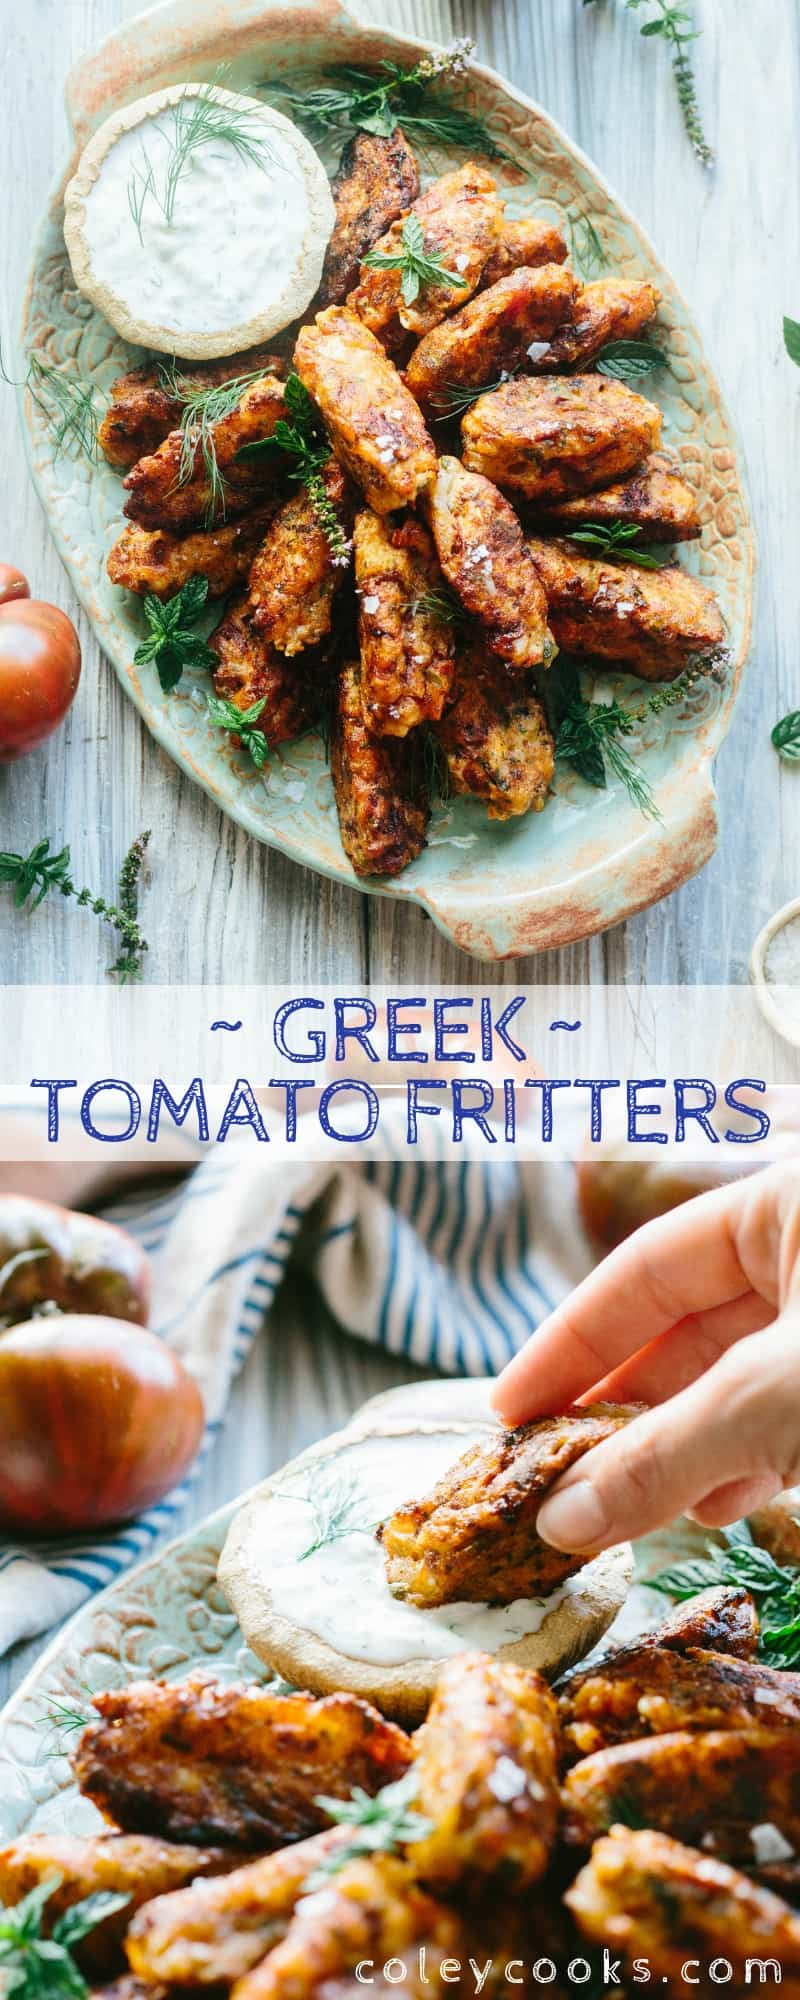 GREEK TOMATO FRITTERS. This easy mezze or appetizer from Santorini, Greece is a delicious and unique way to enjoy summer's best tomatoes! #easy #Greek #tomato #fritter #Santorini #recipe | ColeyCooks.com